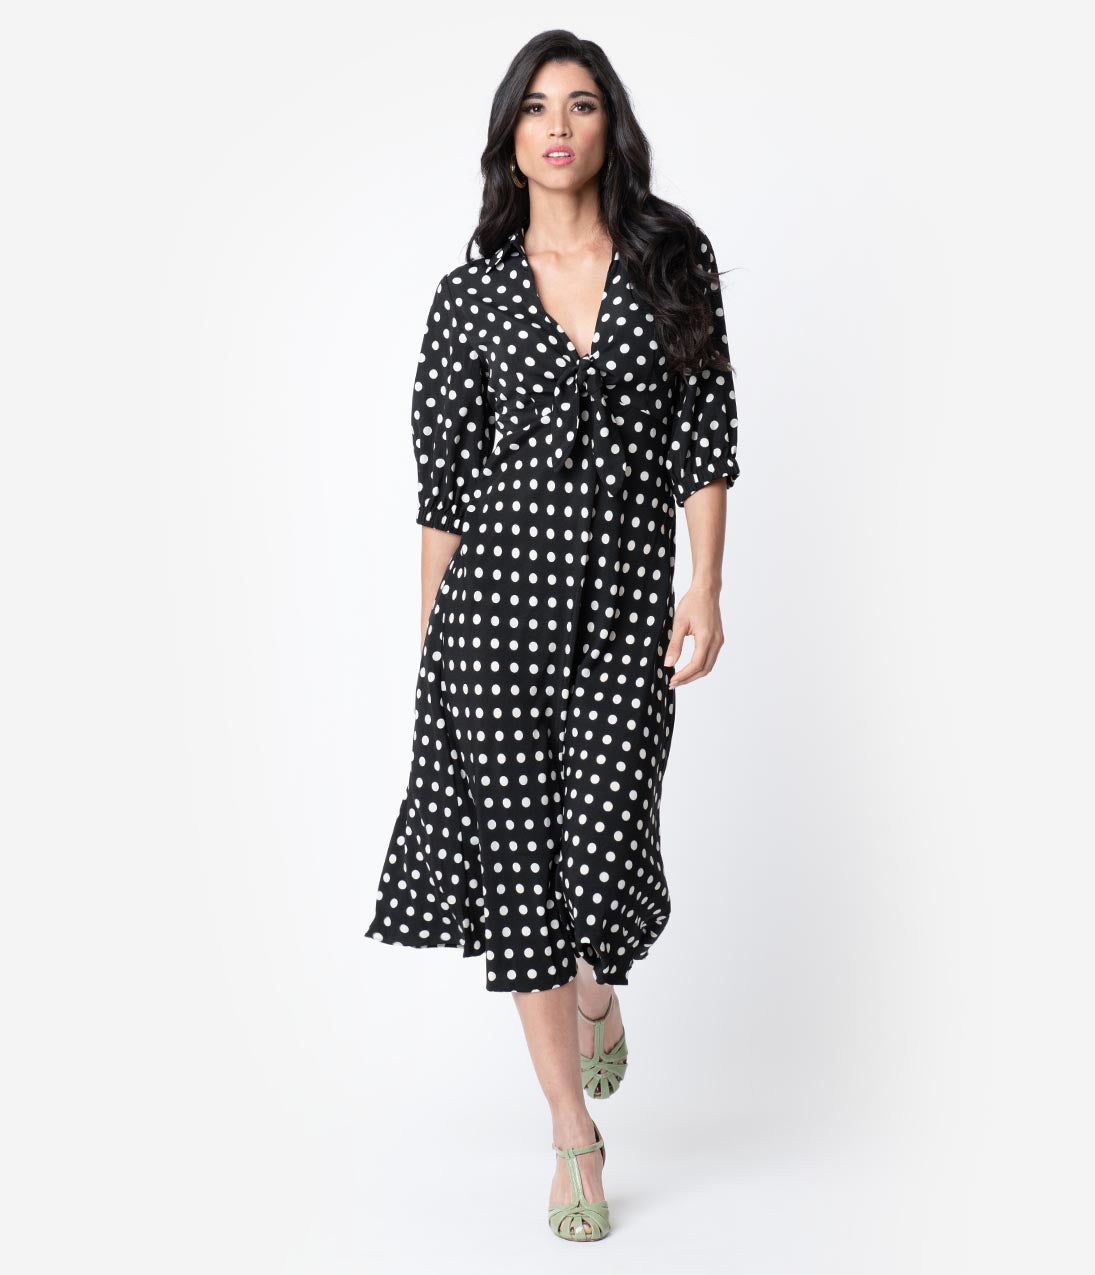 1940s Dresses | 40s Dress, Swing Dress 1940S Style Black  Ivory Polka Dot Sleeved Midi Dress $58.00 AT vintagedancer.com